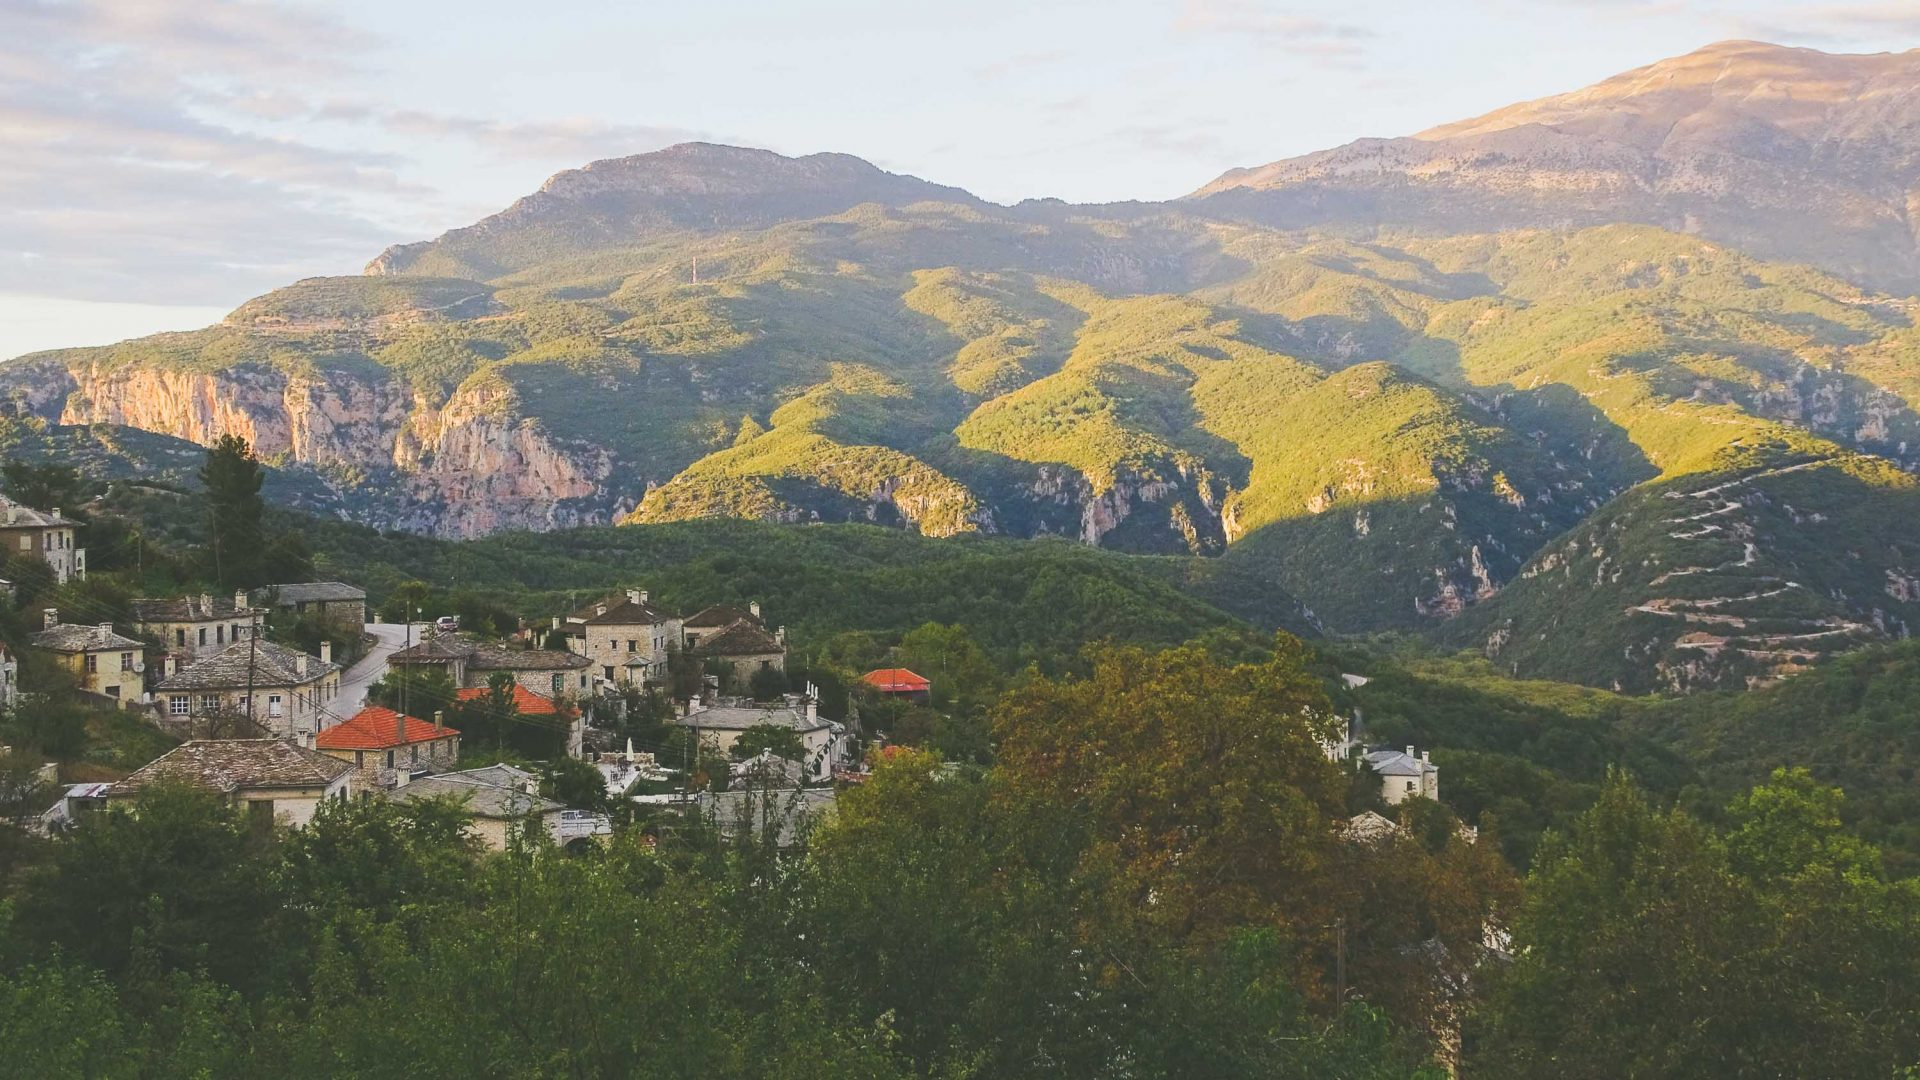 Greece's Zagori region is the mountain wonderland you've been craving